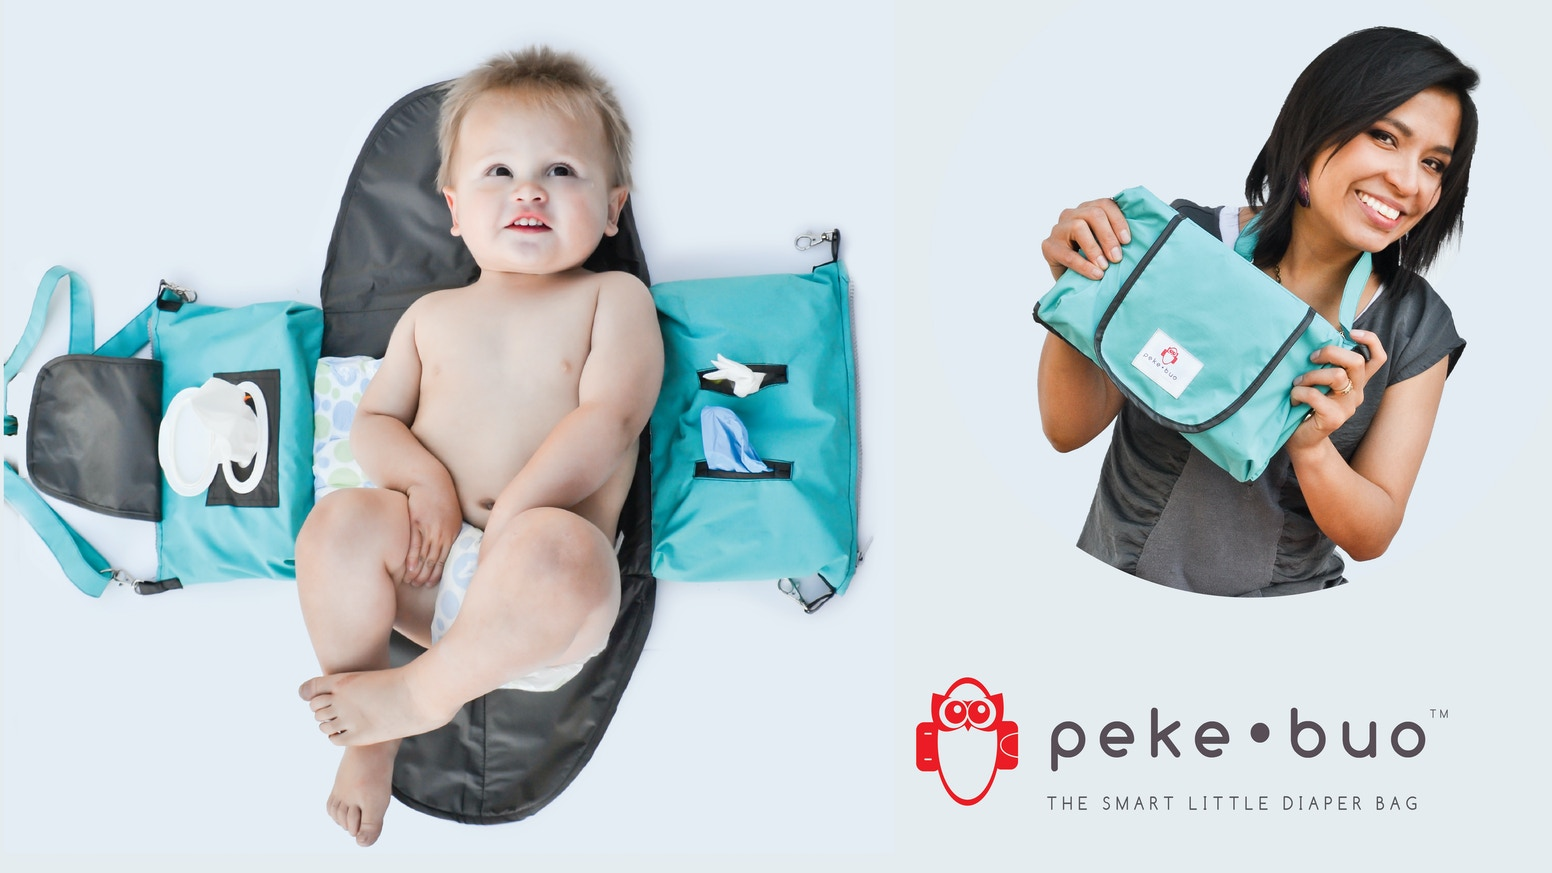 The Diaper Bag Revolutionized Super Compact Unfolds Into A Changing Station Instant